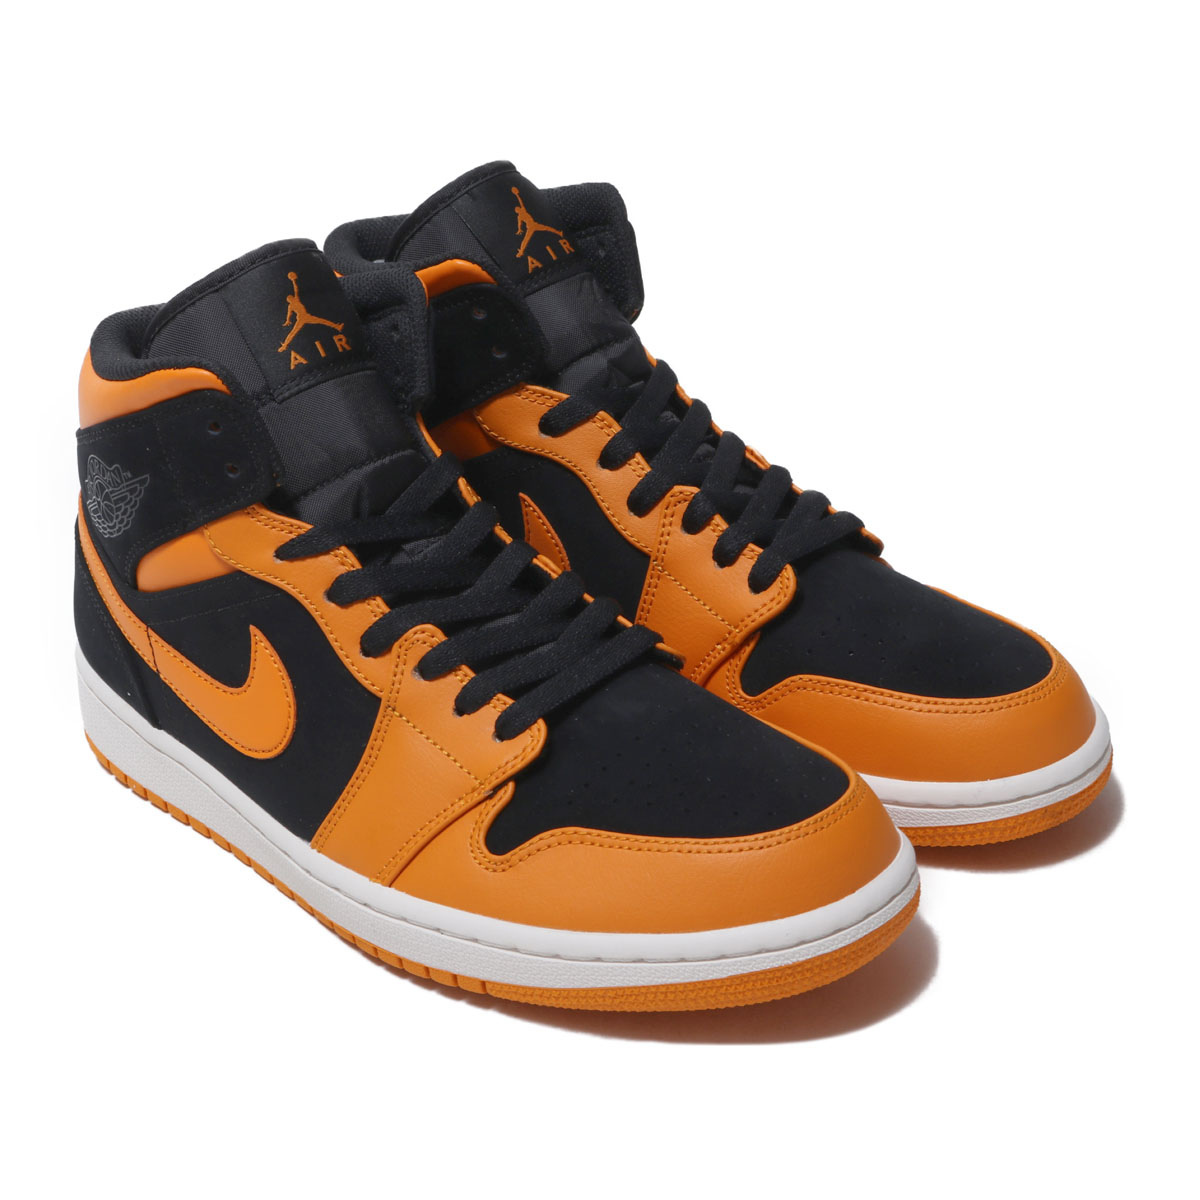 a8db3f35516f The Air Jordan 1 mid images original AJ1. The design which reminds